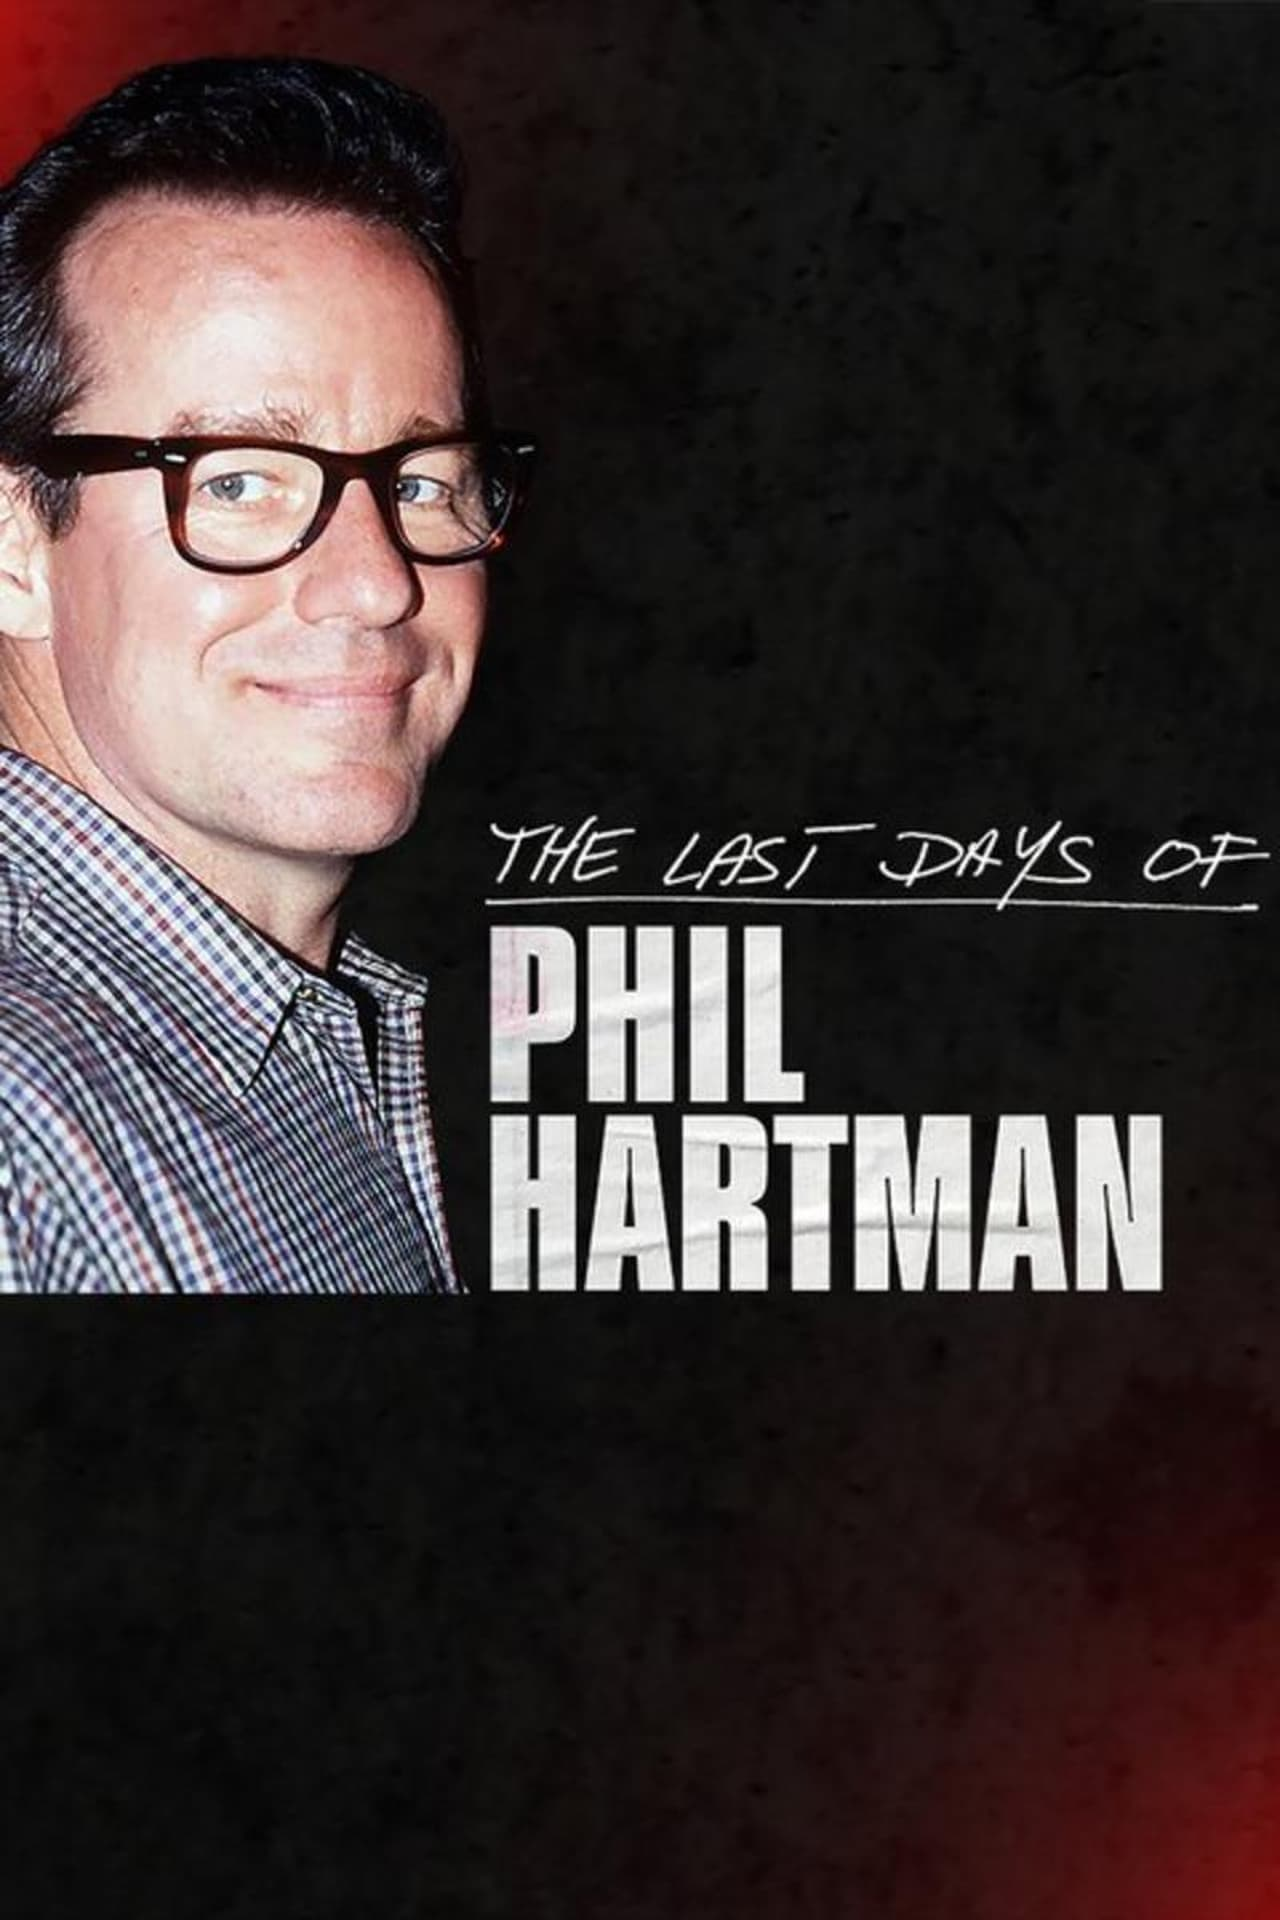 The Last Days of Phil Hartman (2019)